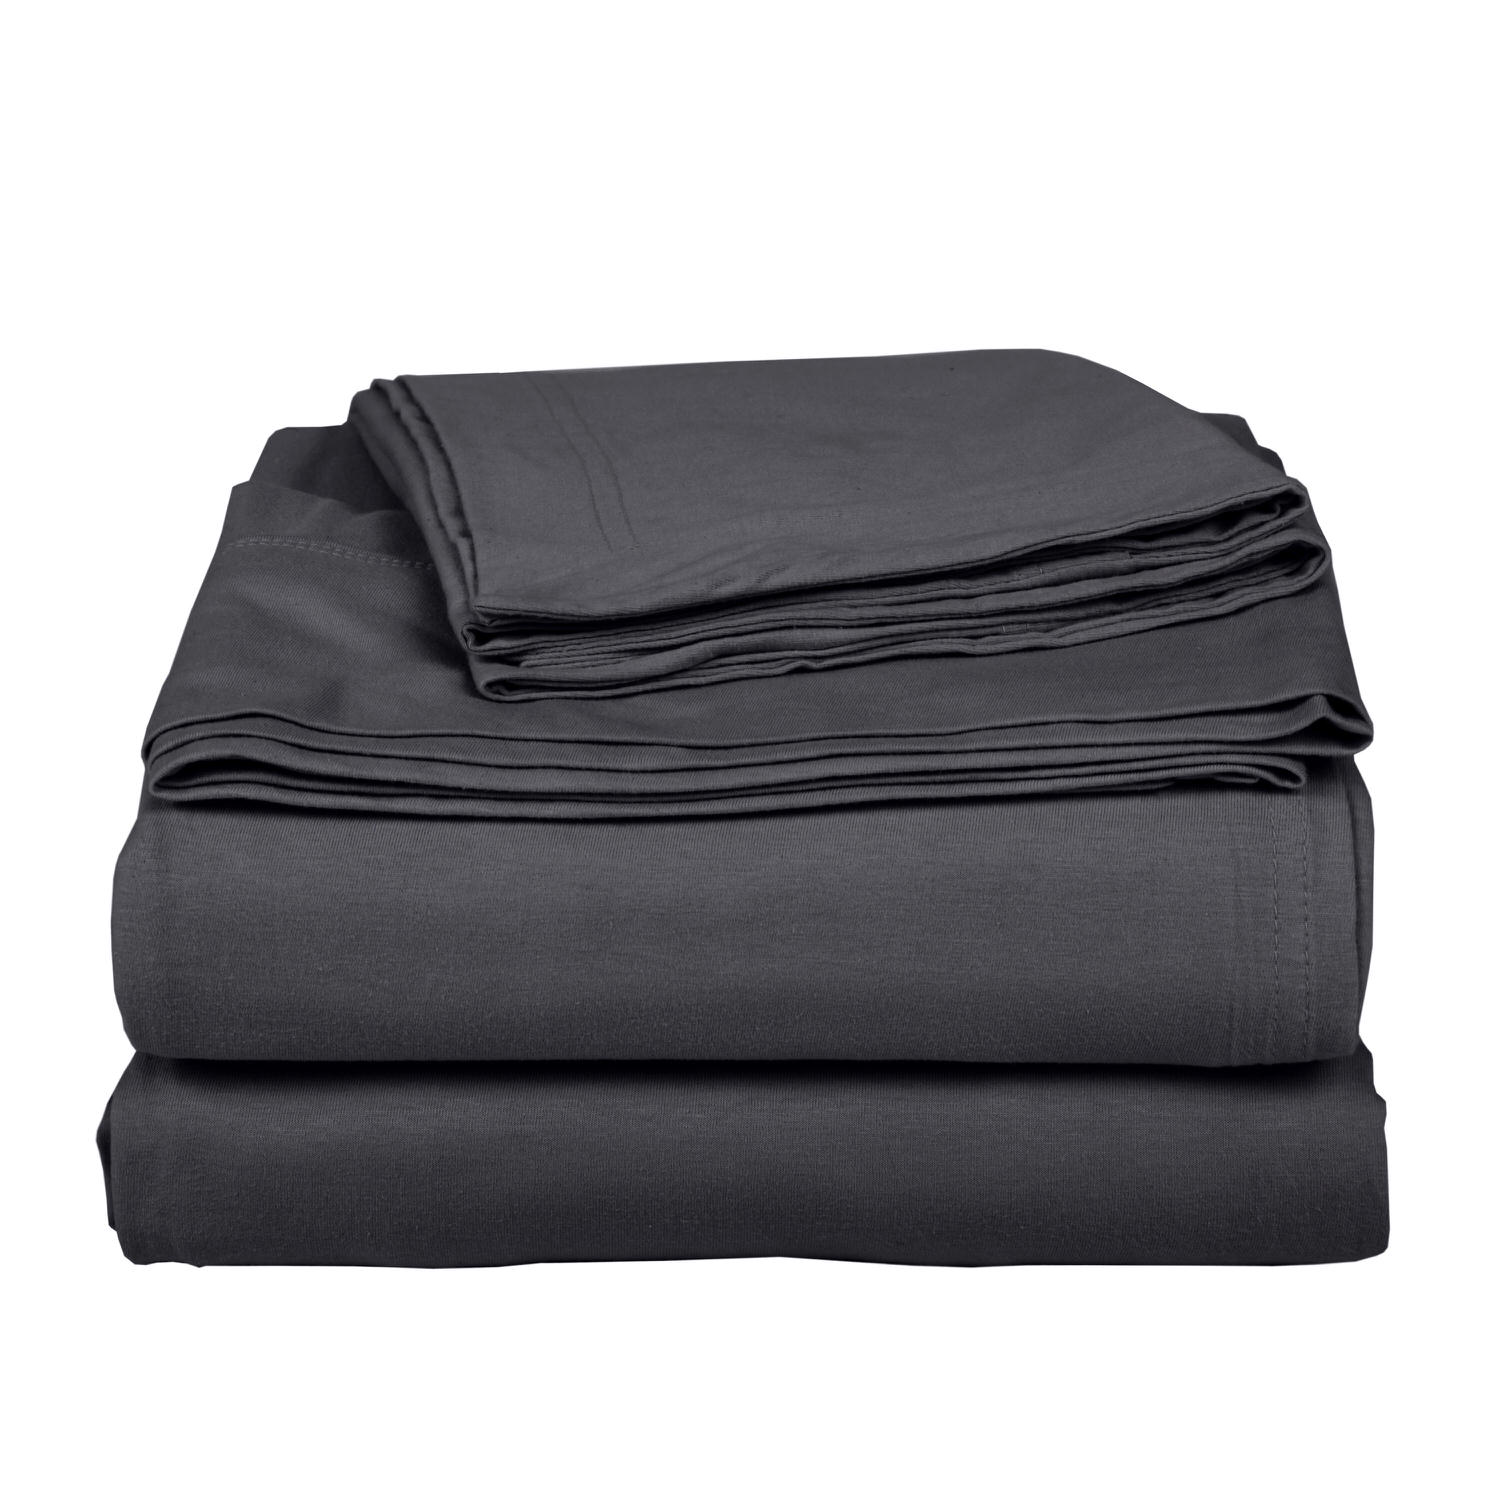 Cotton Dark Grey Bed Sheet Set